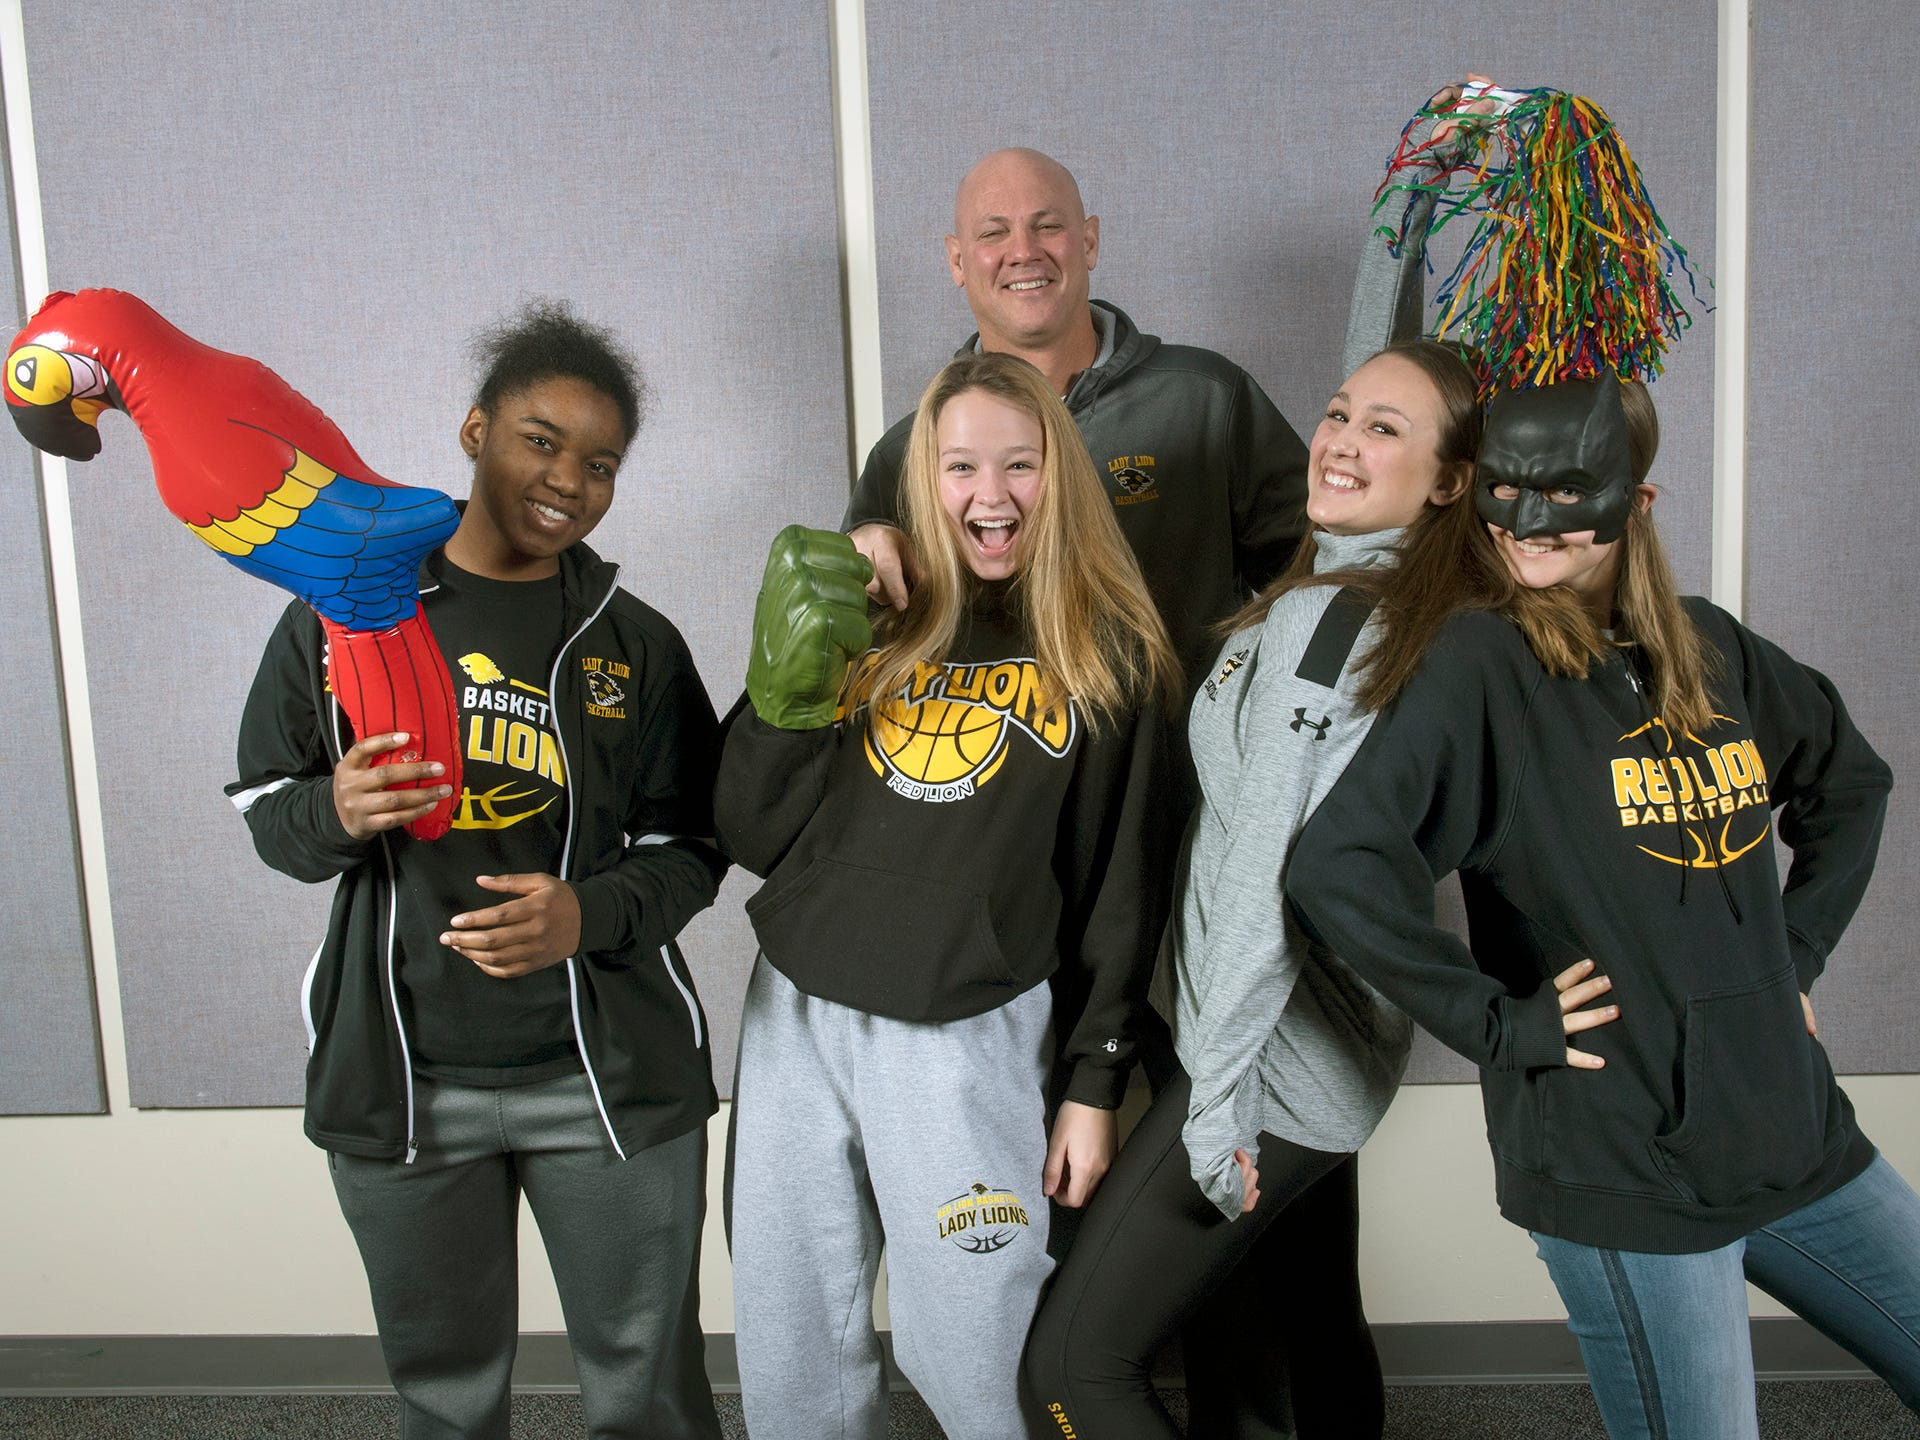 From the left in the front row, Jordyn Foster, Sydney Smith, Riley Miller, Alleney Klunk with Coach Don Dimoff in the back row, of the Red Lion girls basketball team, pose during the 2018-19 GameTimePa YAIAA Winter Media Day Sunday November 11, 2018.